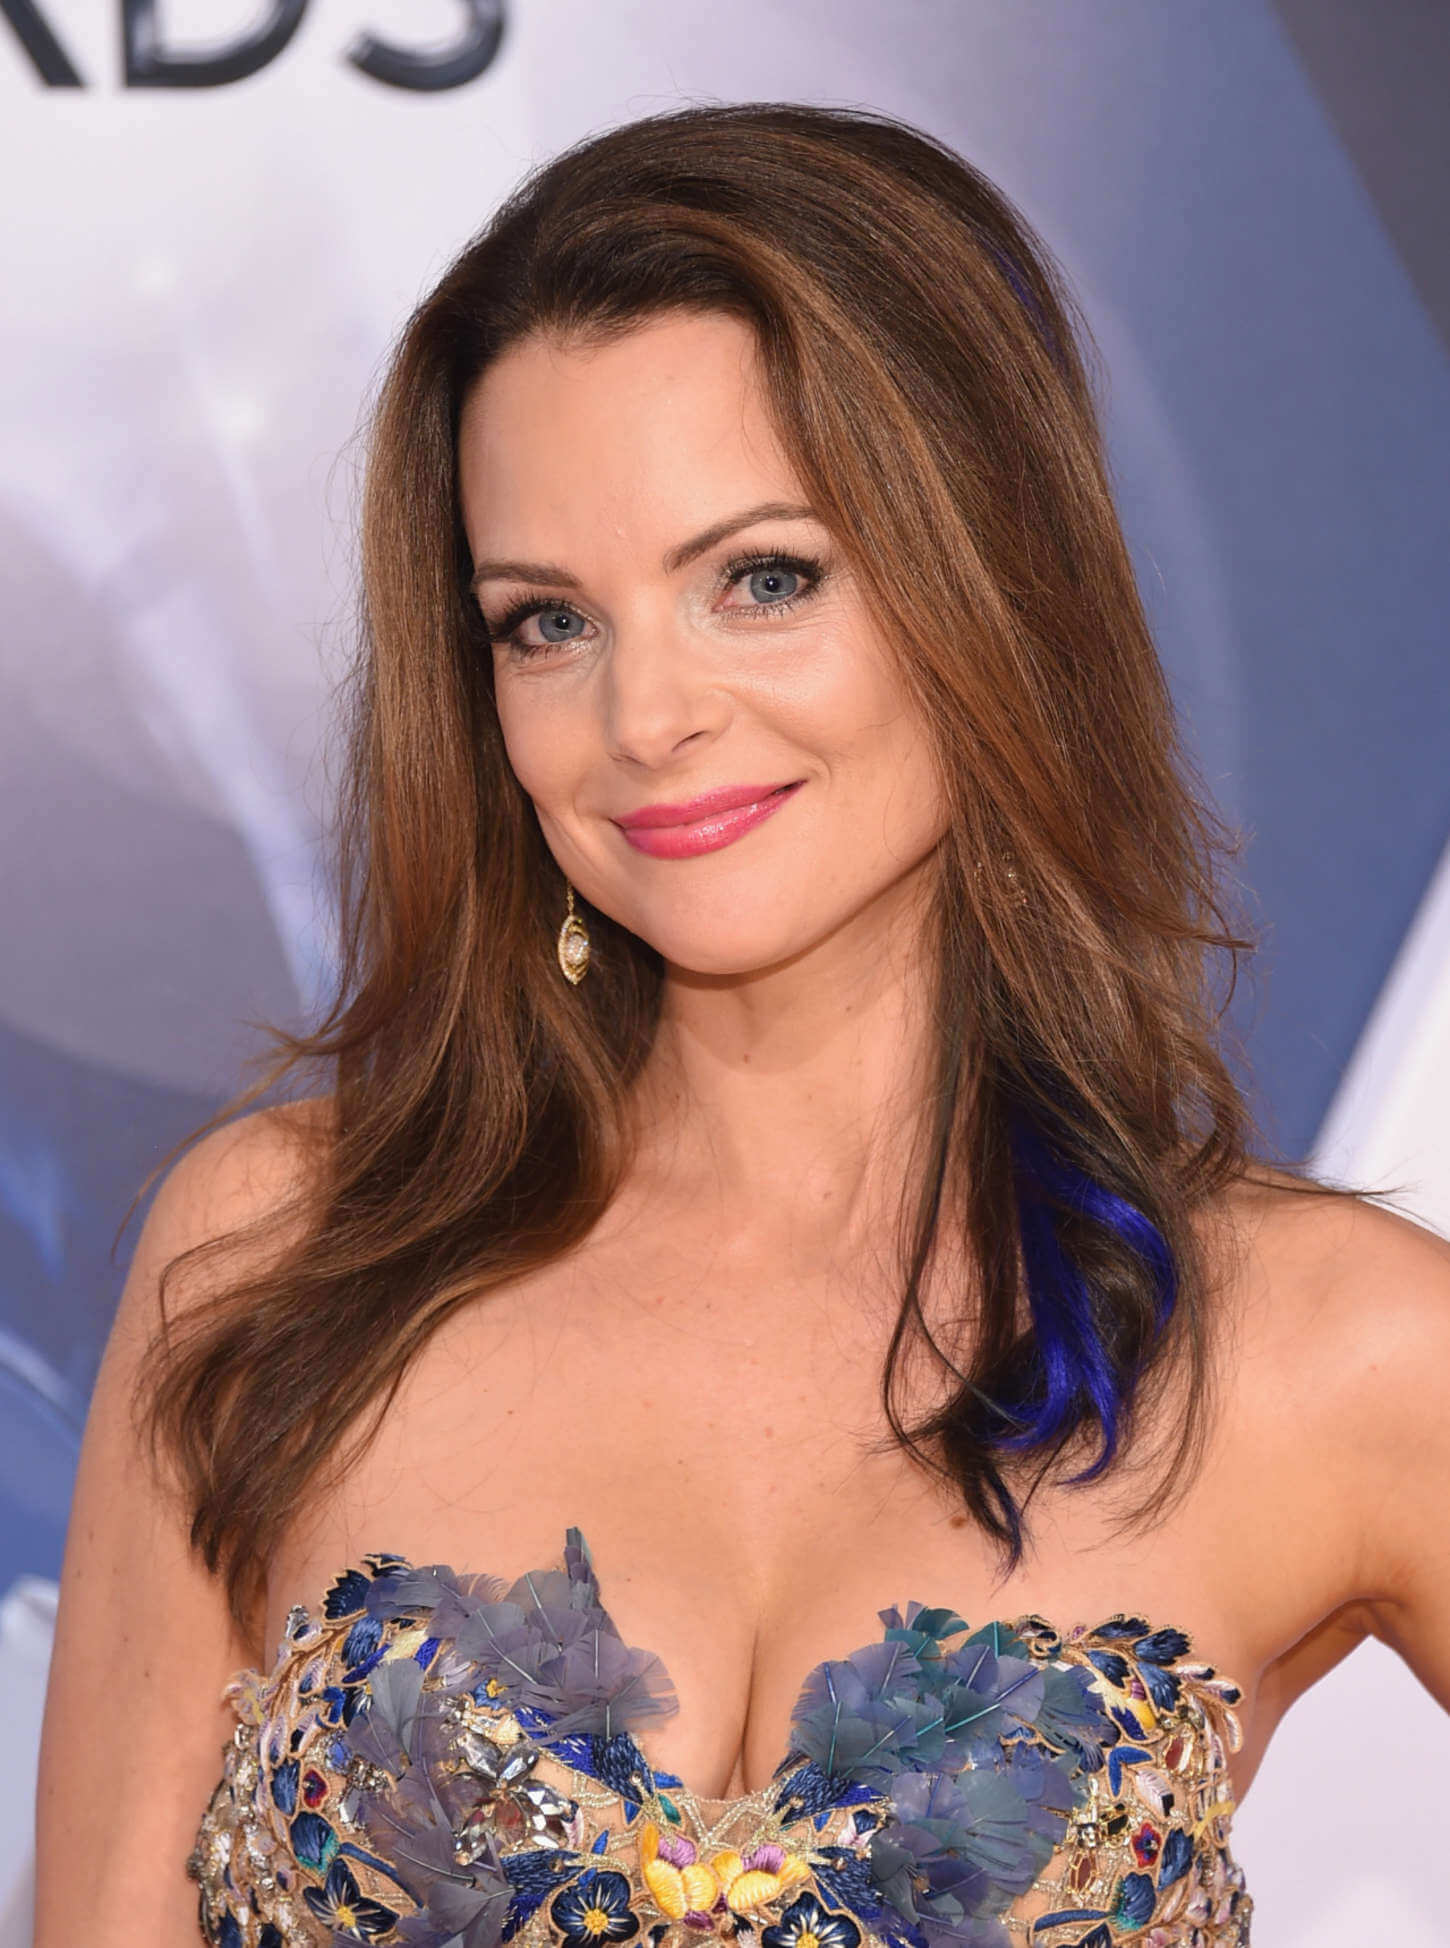 kimberly williams-paisley (51)